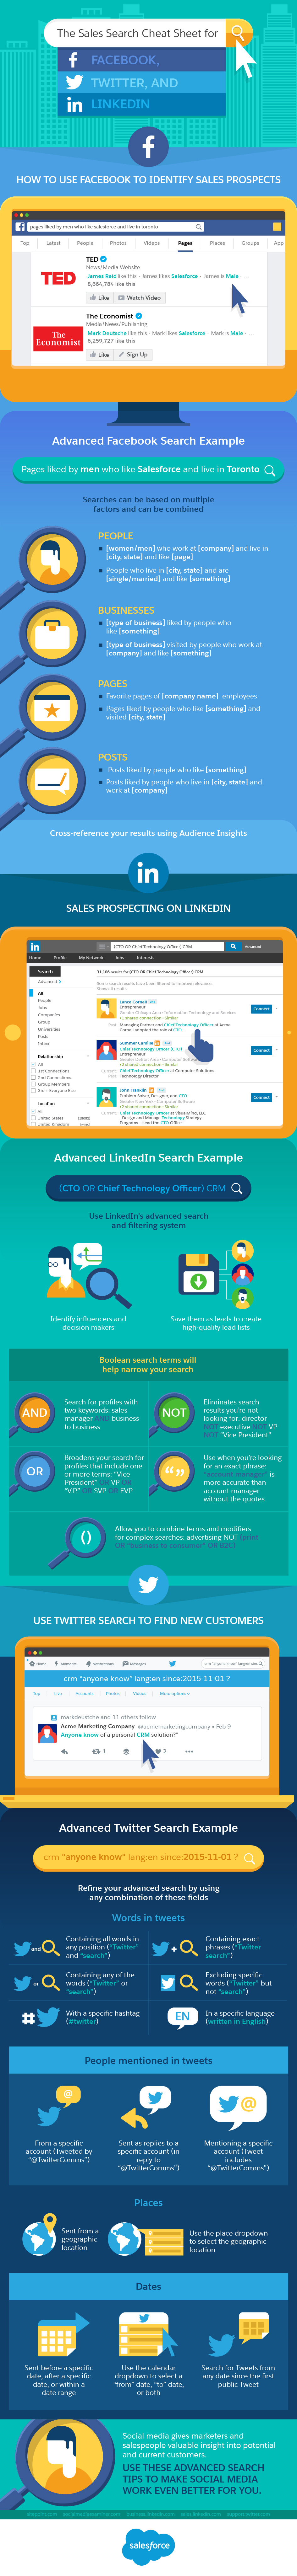 advanced-search-cheat-sheet-infographic